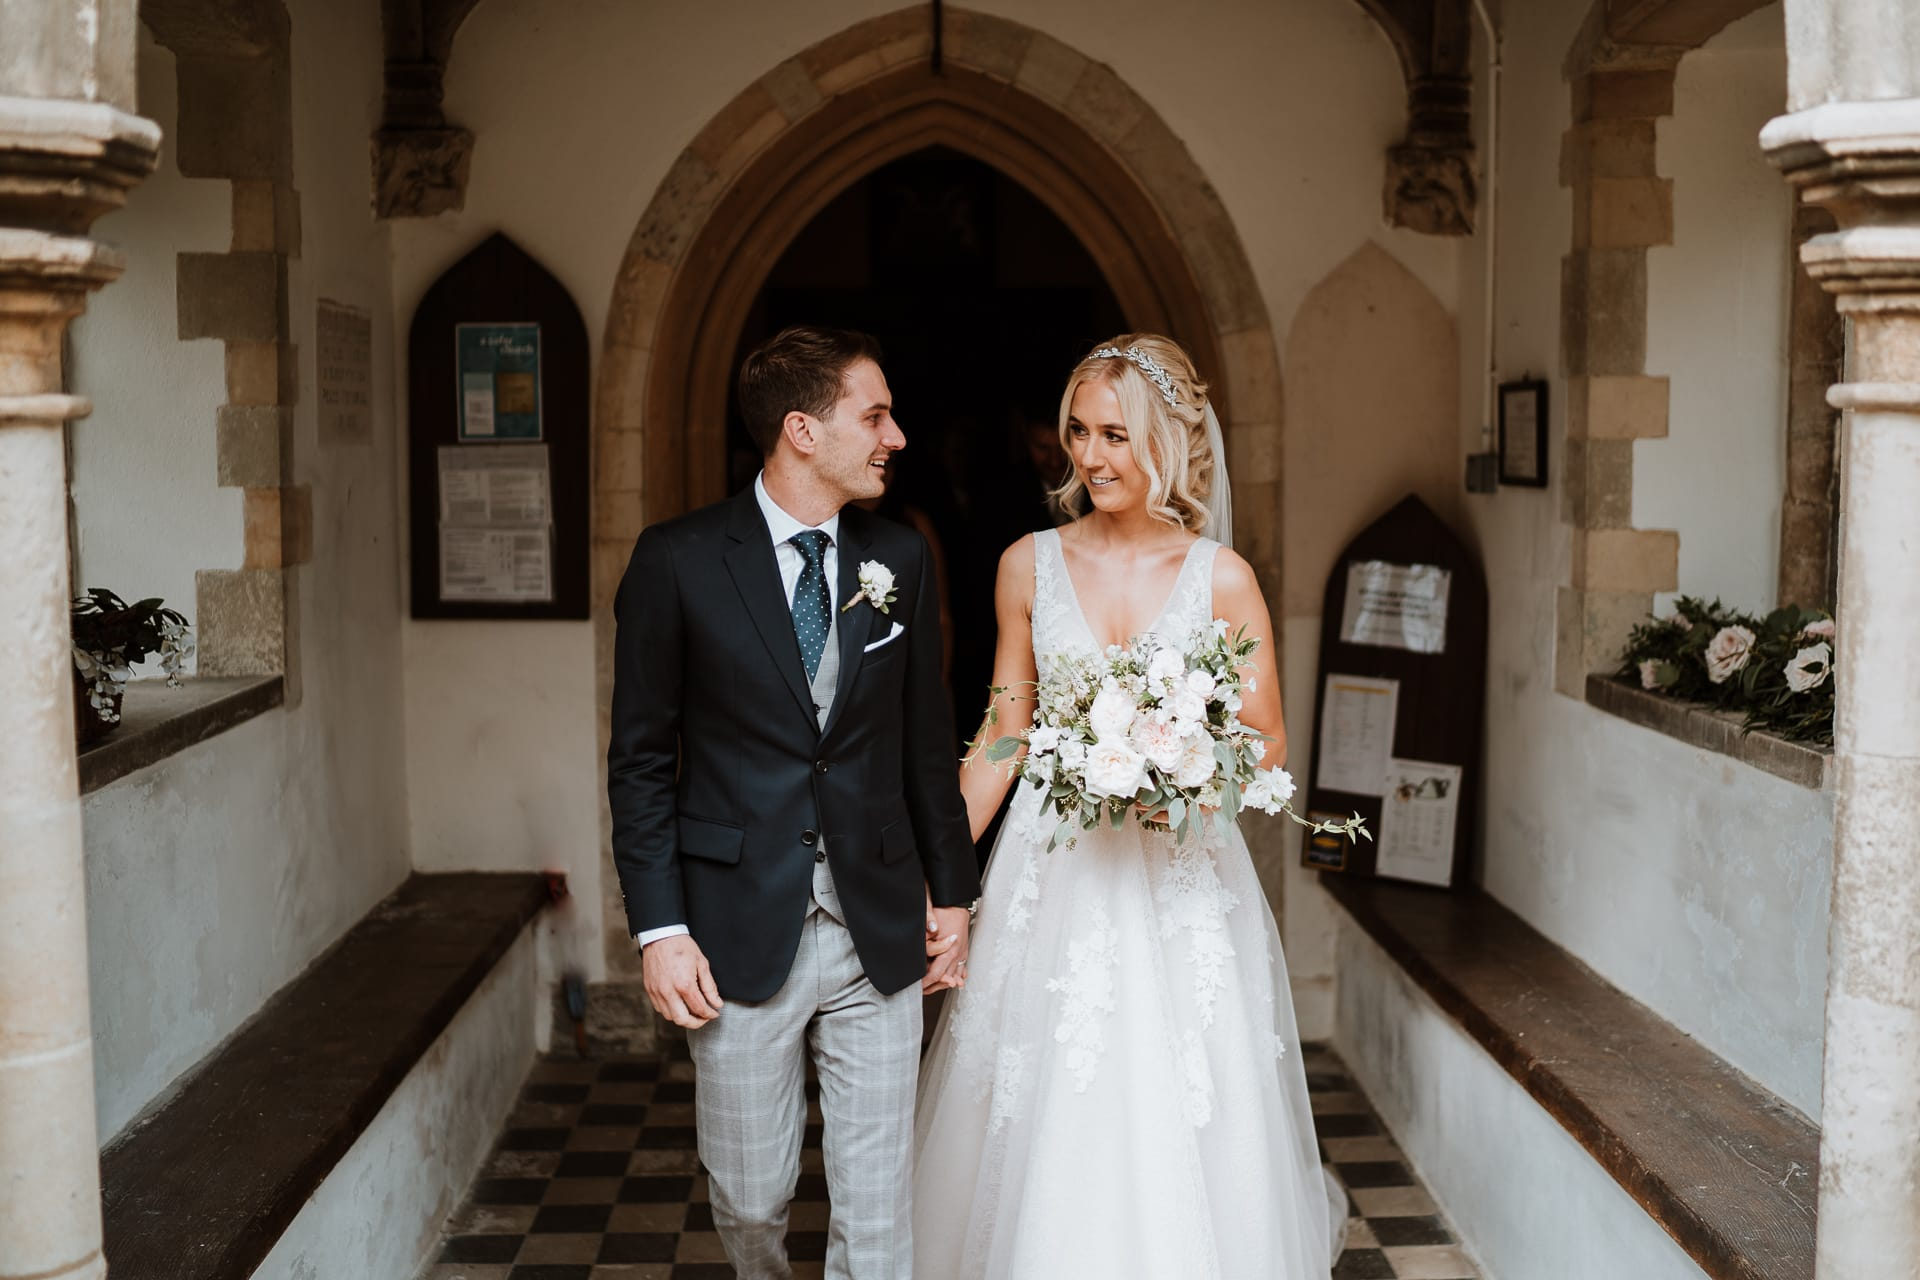 Wedding Photographer Frequently Asked Questions